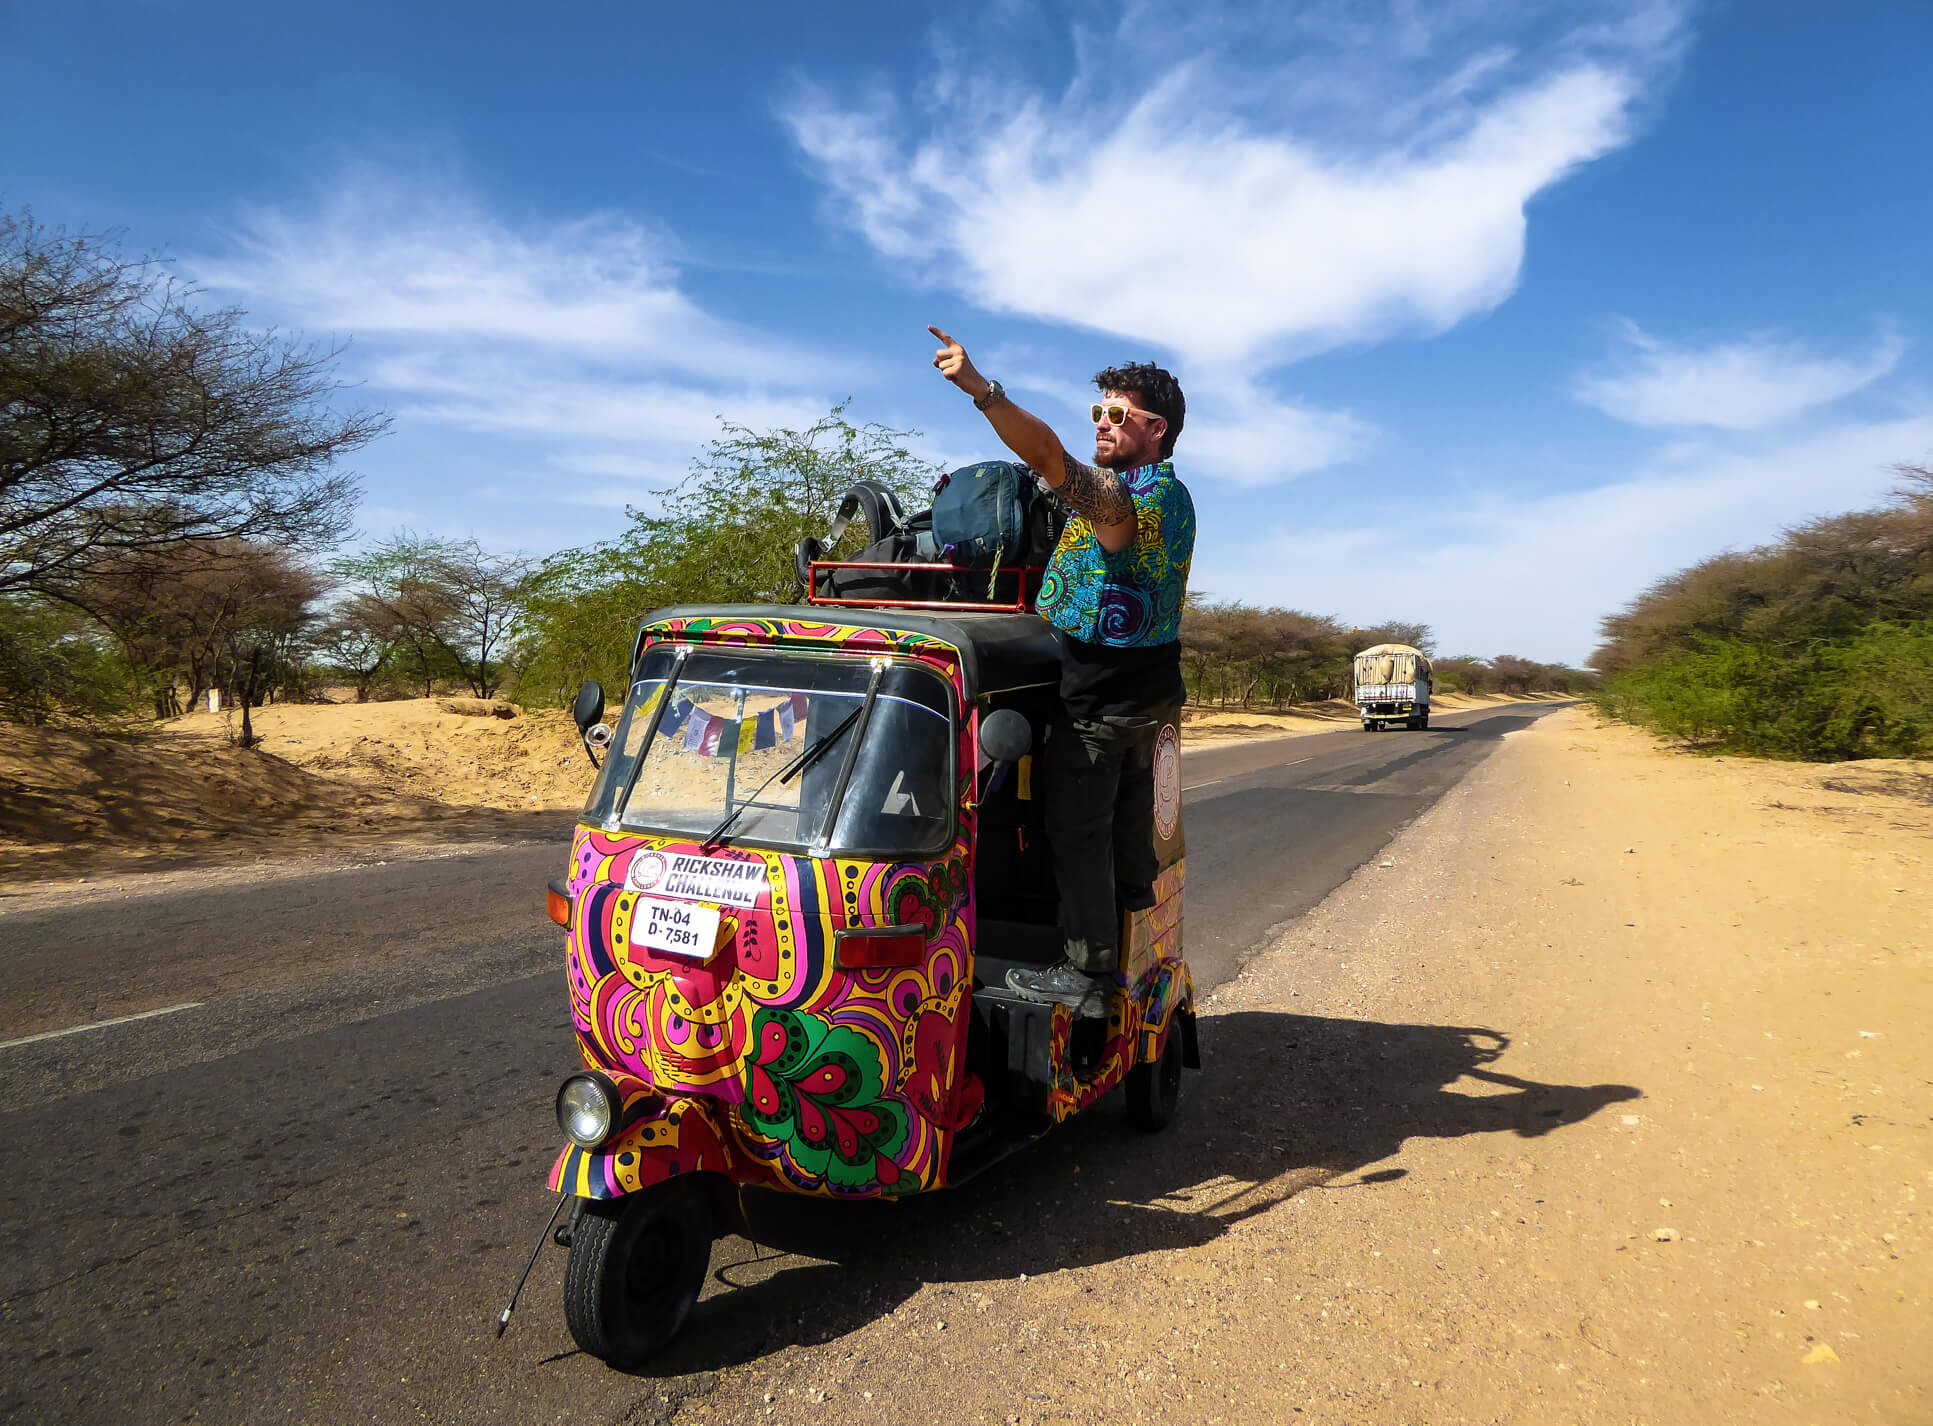 A backpacker achieving his ultimate bucket list experience of crossing India by tuk-tuk